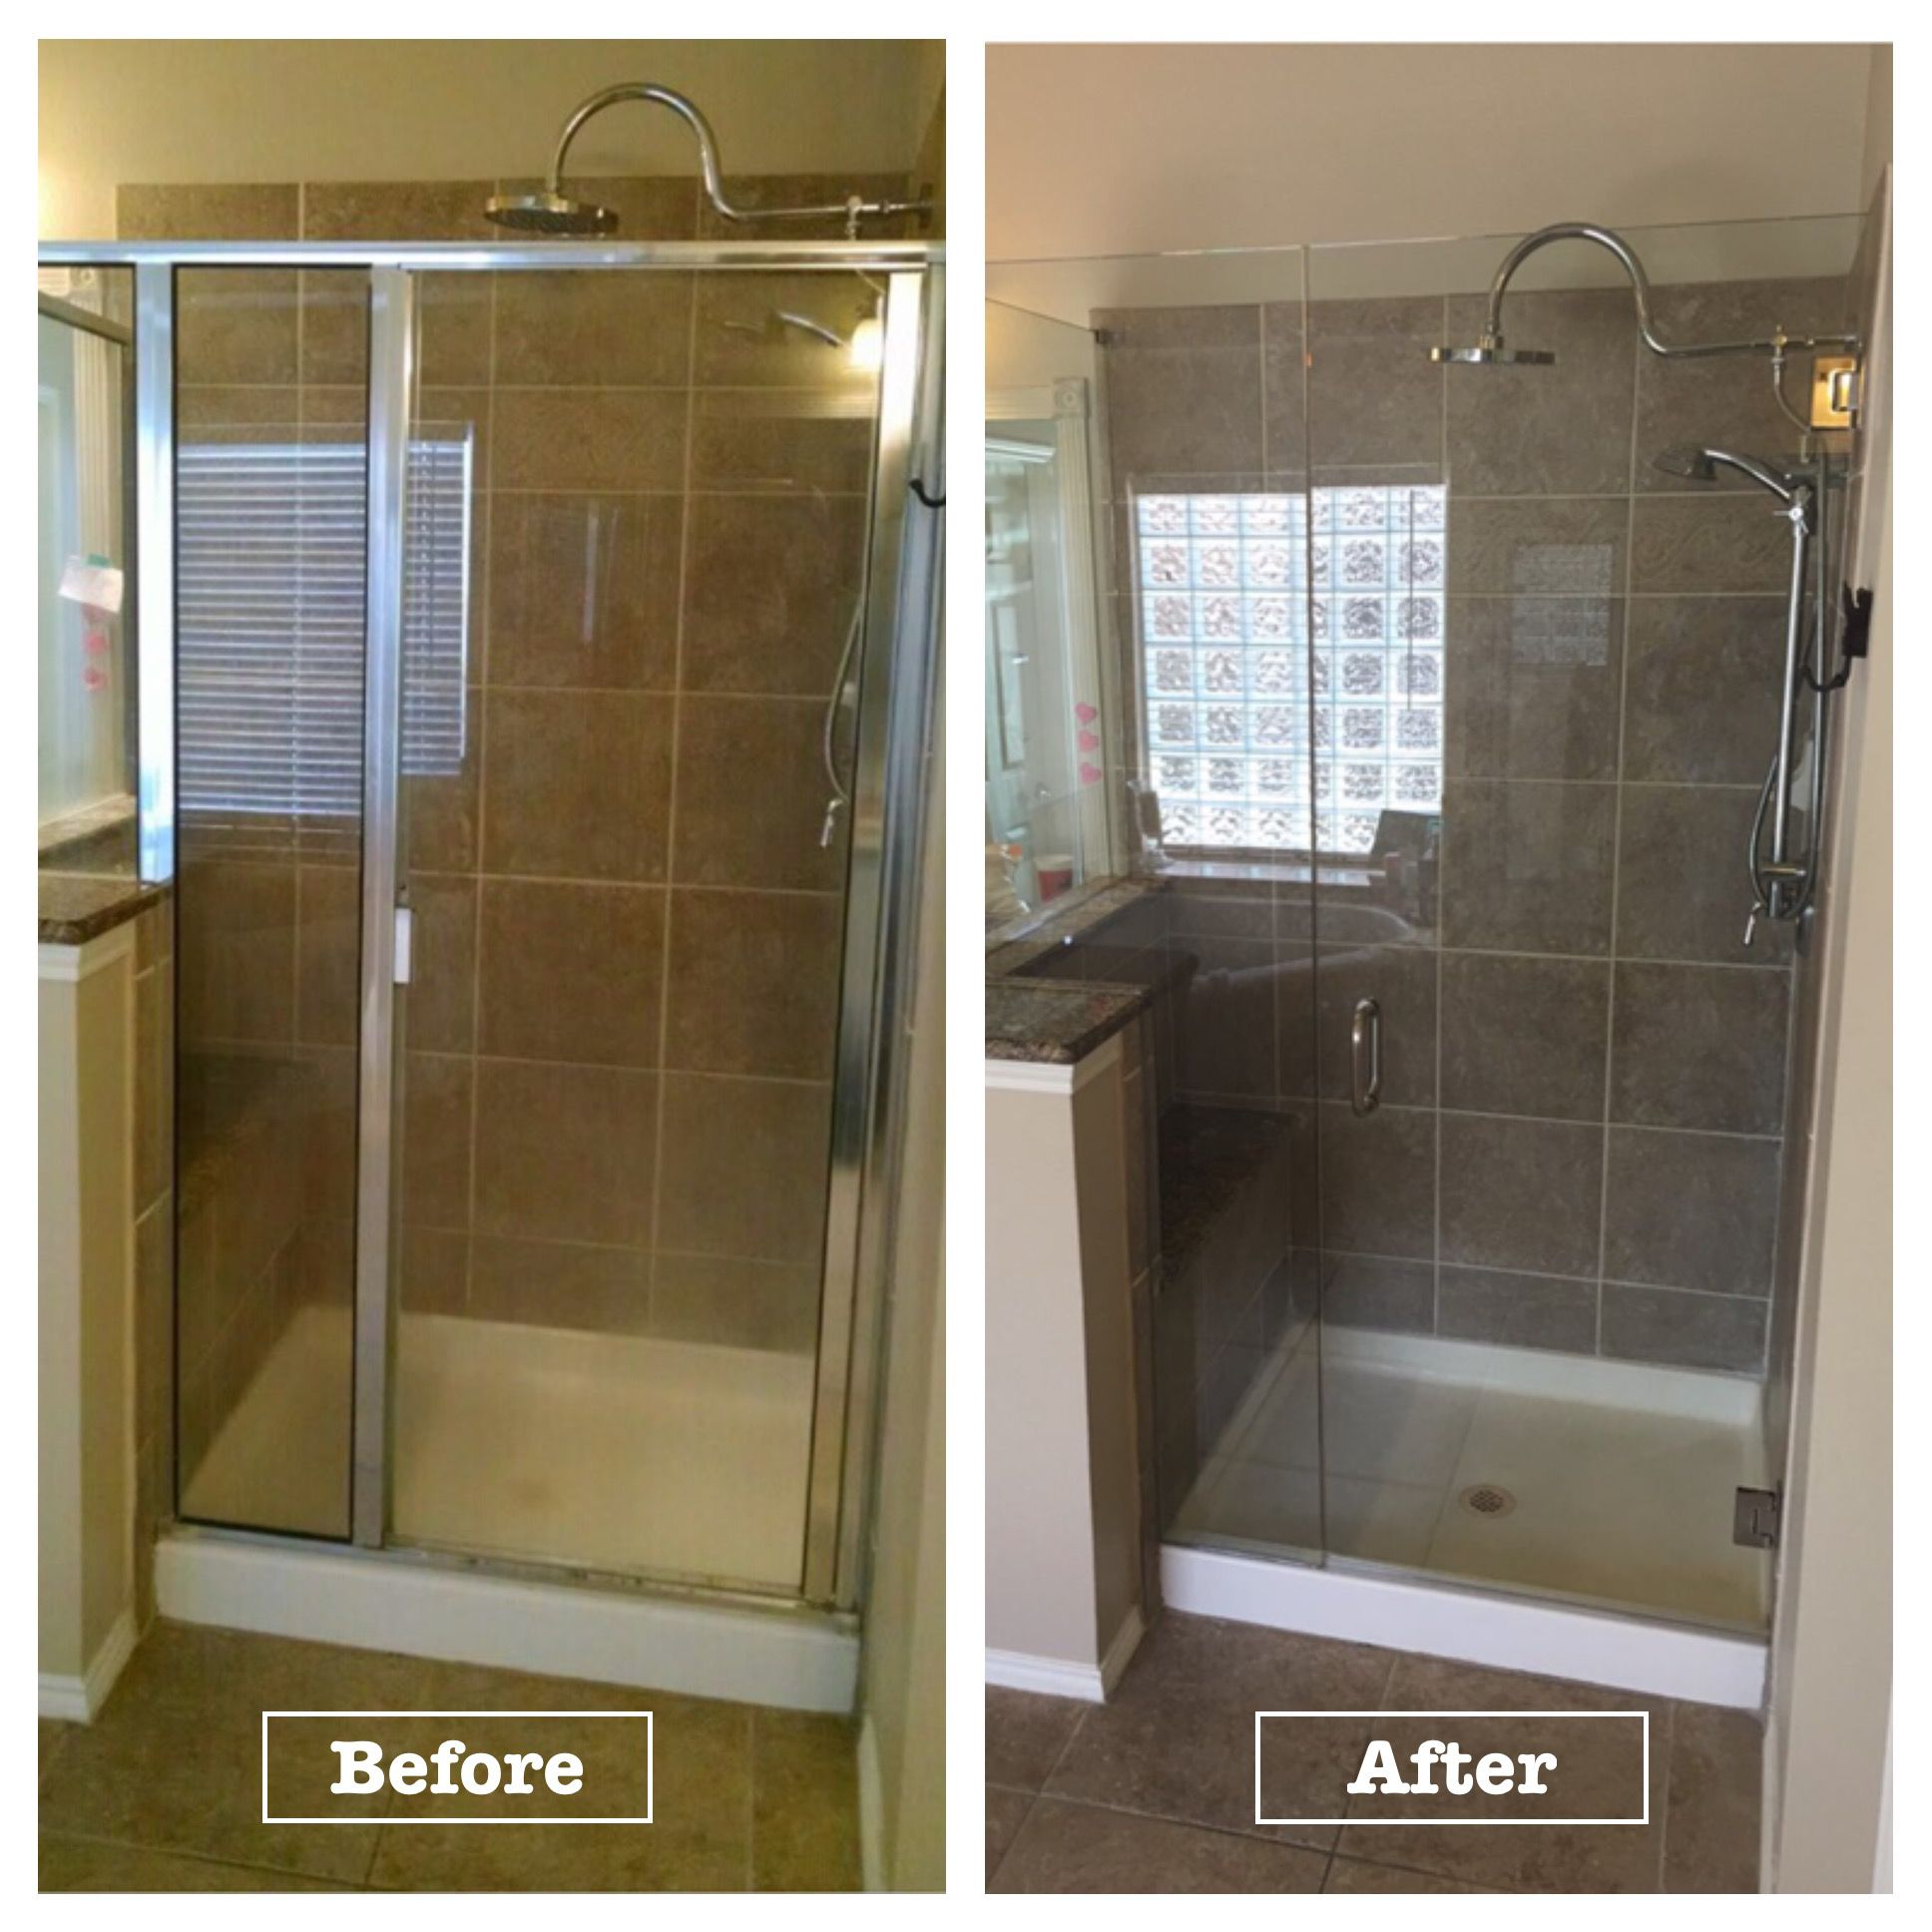 Before And After Images Of A Semi Frameless Shower Changed To A